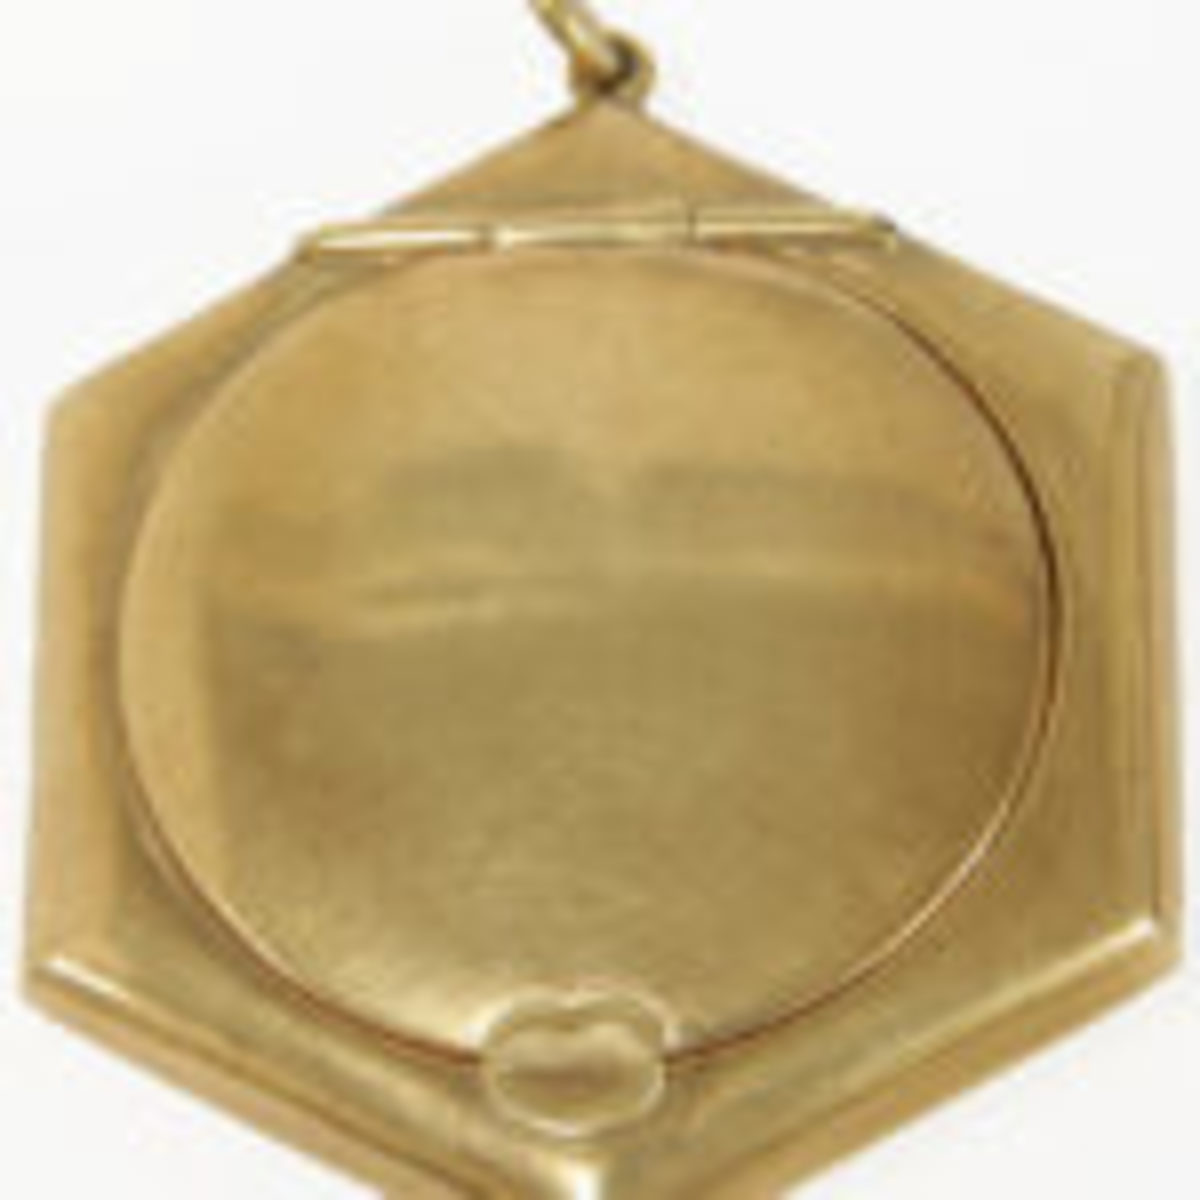 Hexagonal compact with hinged lid